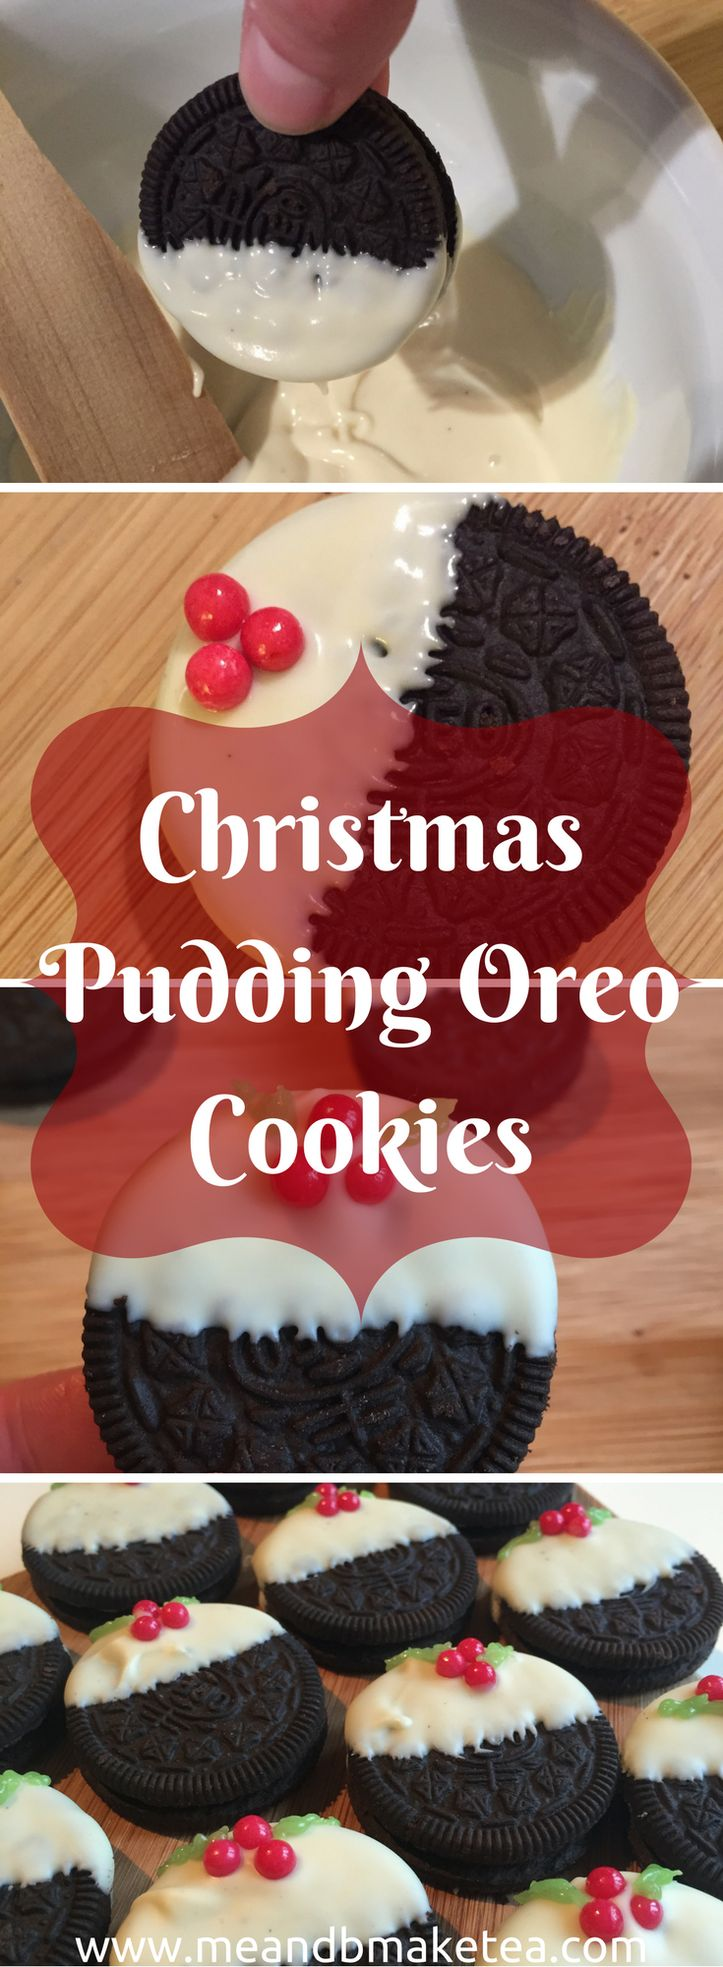 Check out these cute no bake oreo christmas pudding cookies. they are super quick and easy to make. the perfect festive recipe. Take a look at my tutorial to find out how to make them!